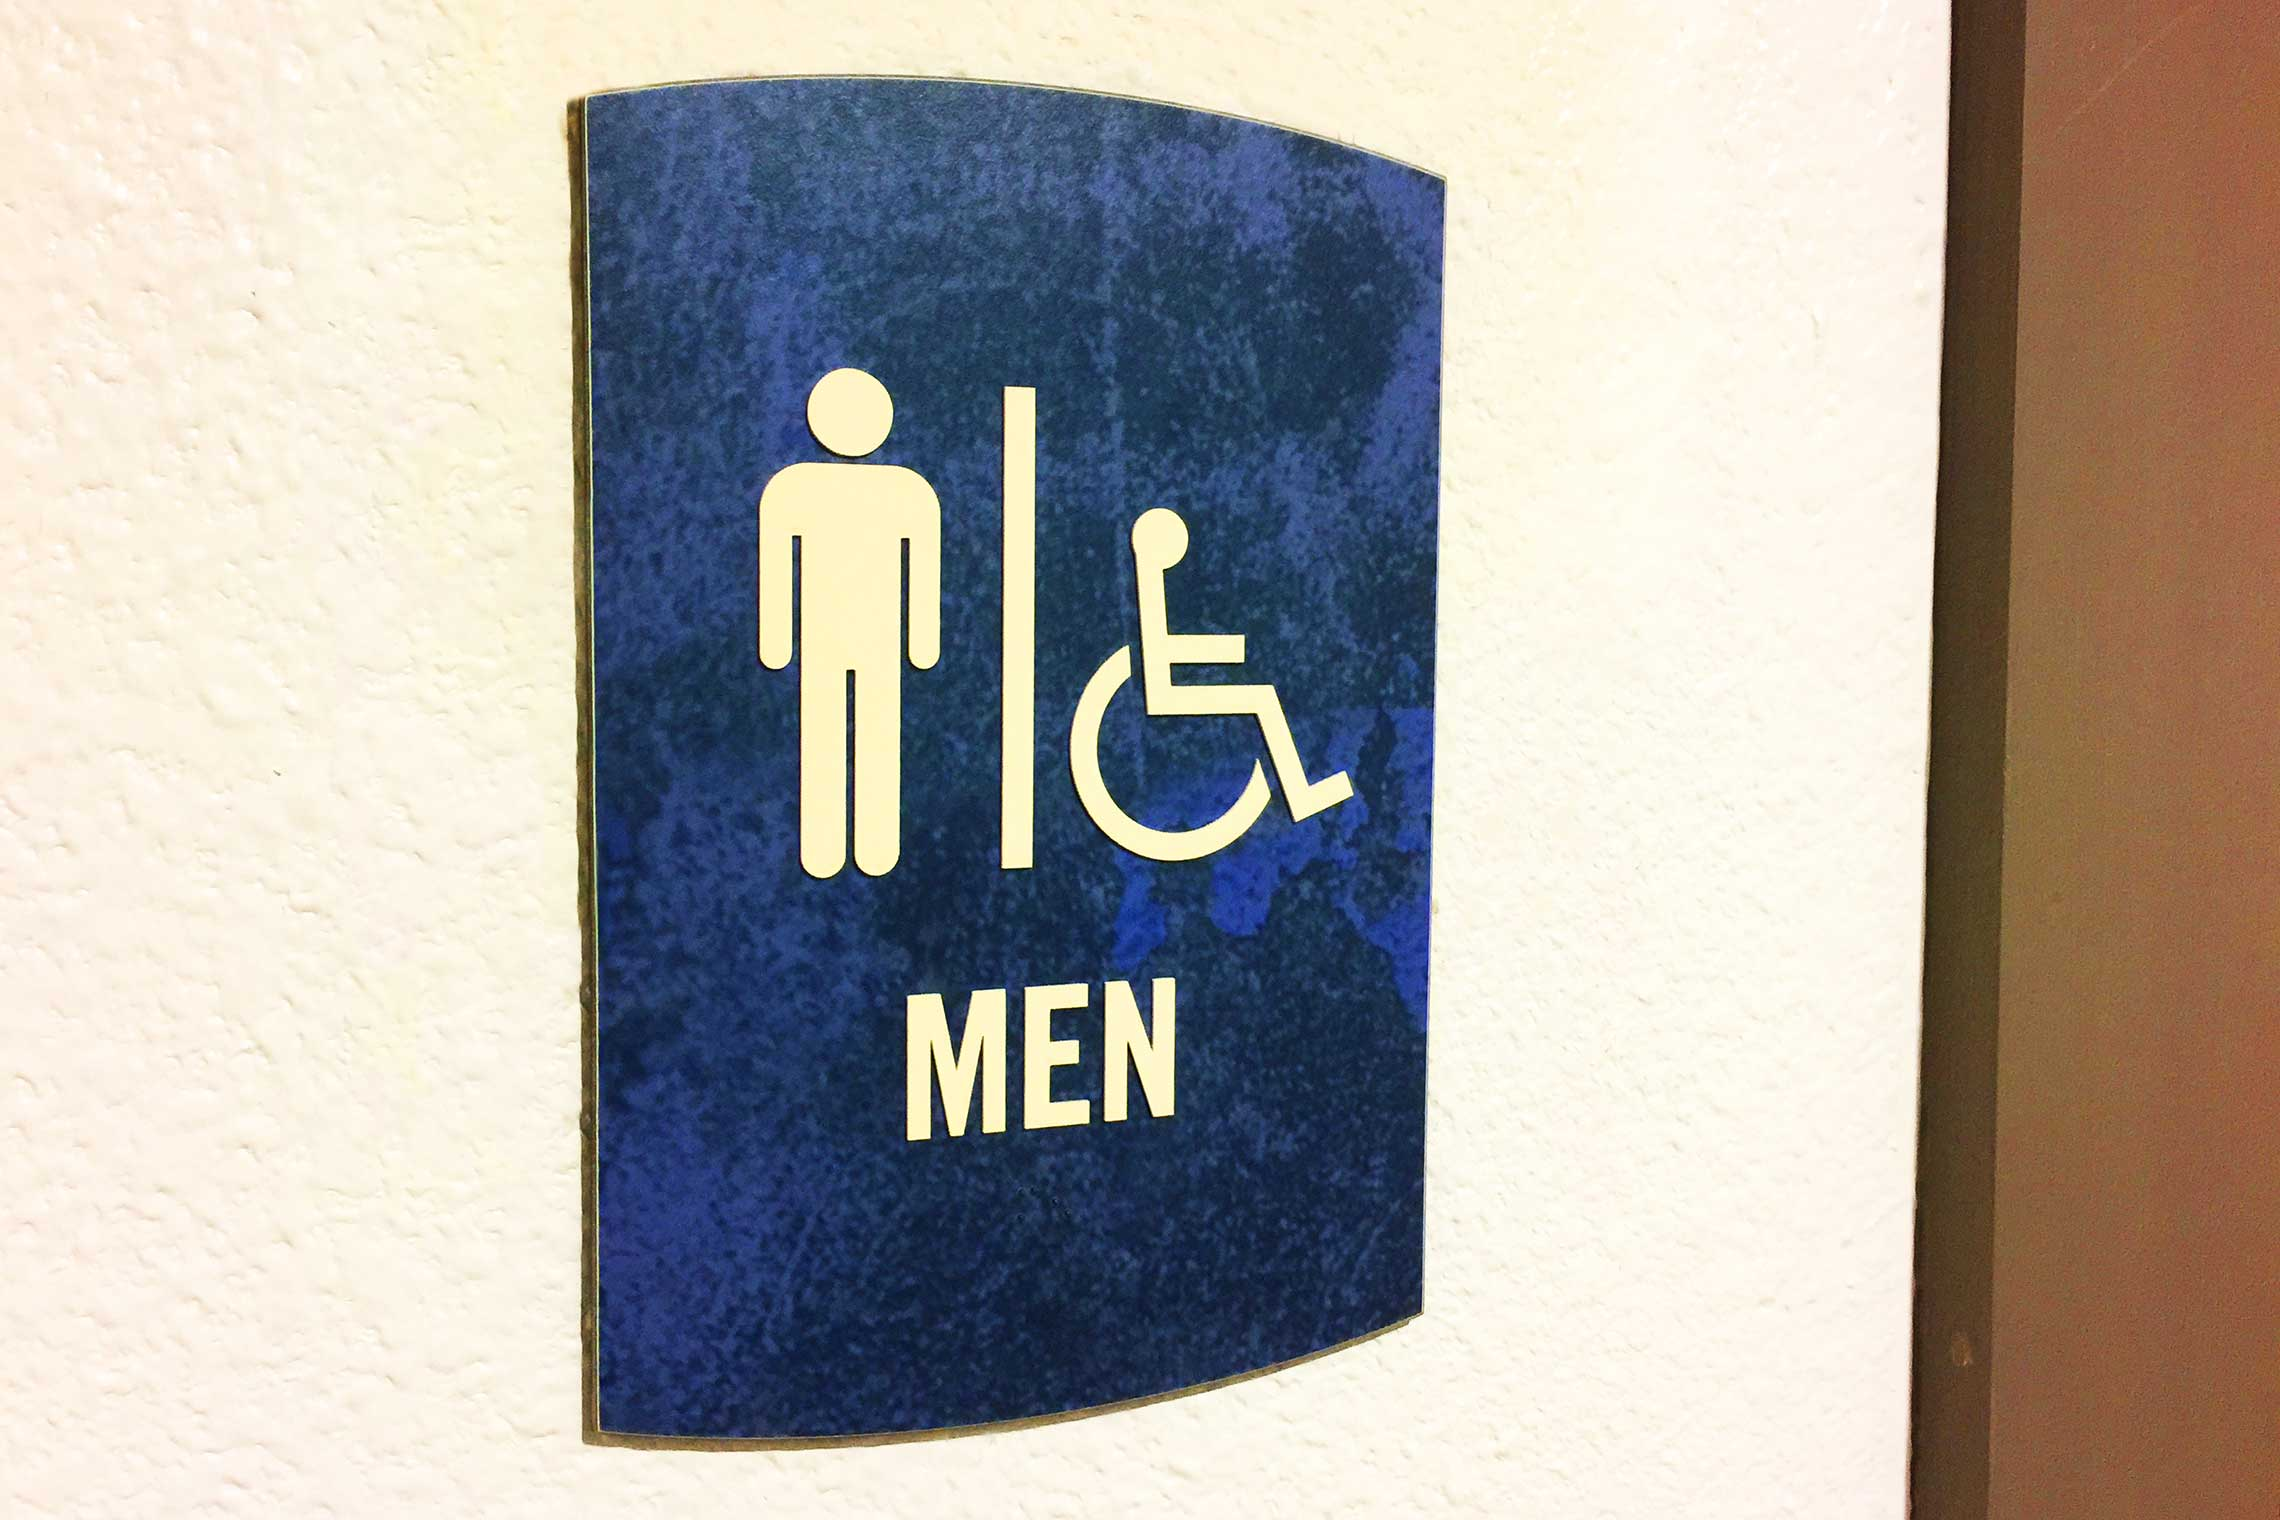 The Davis Soco Apartments Men Restroom Sign